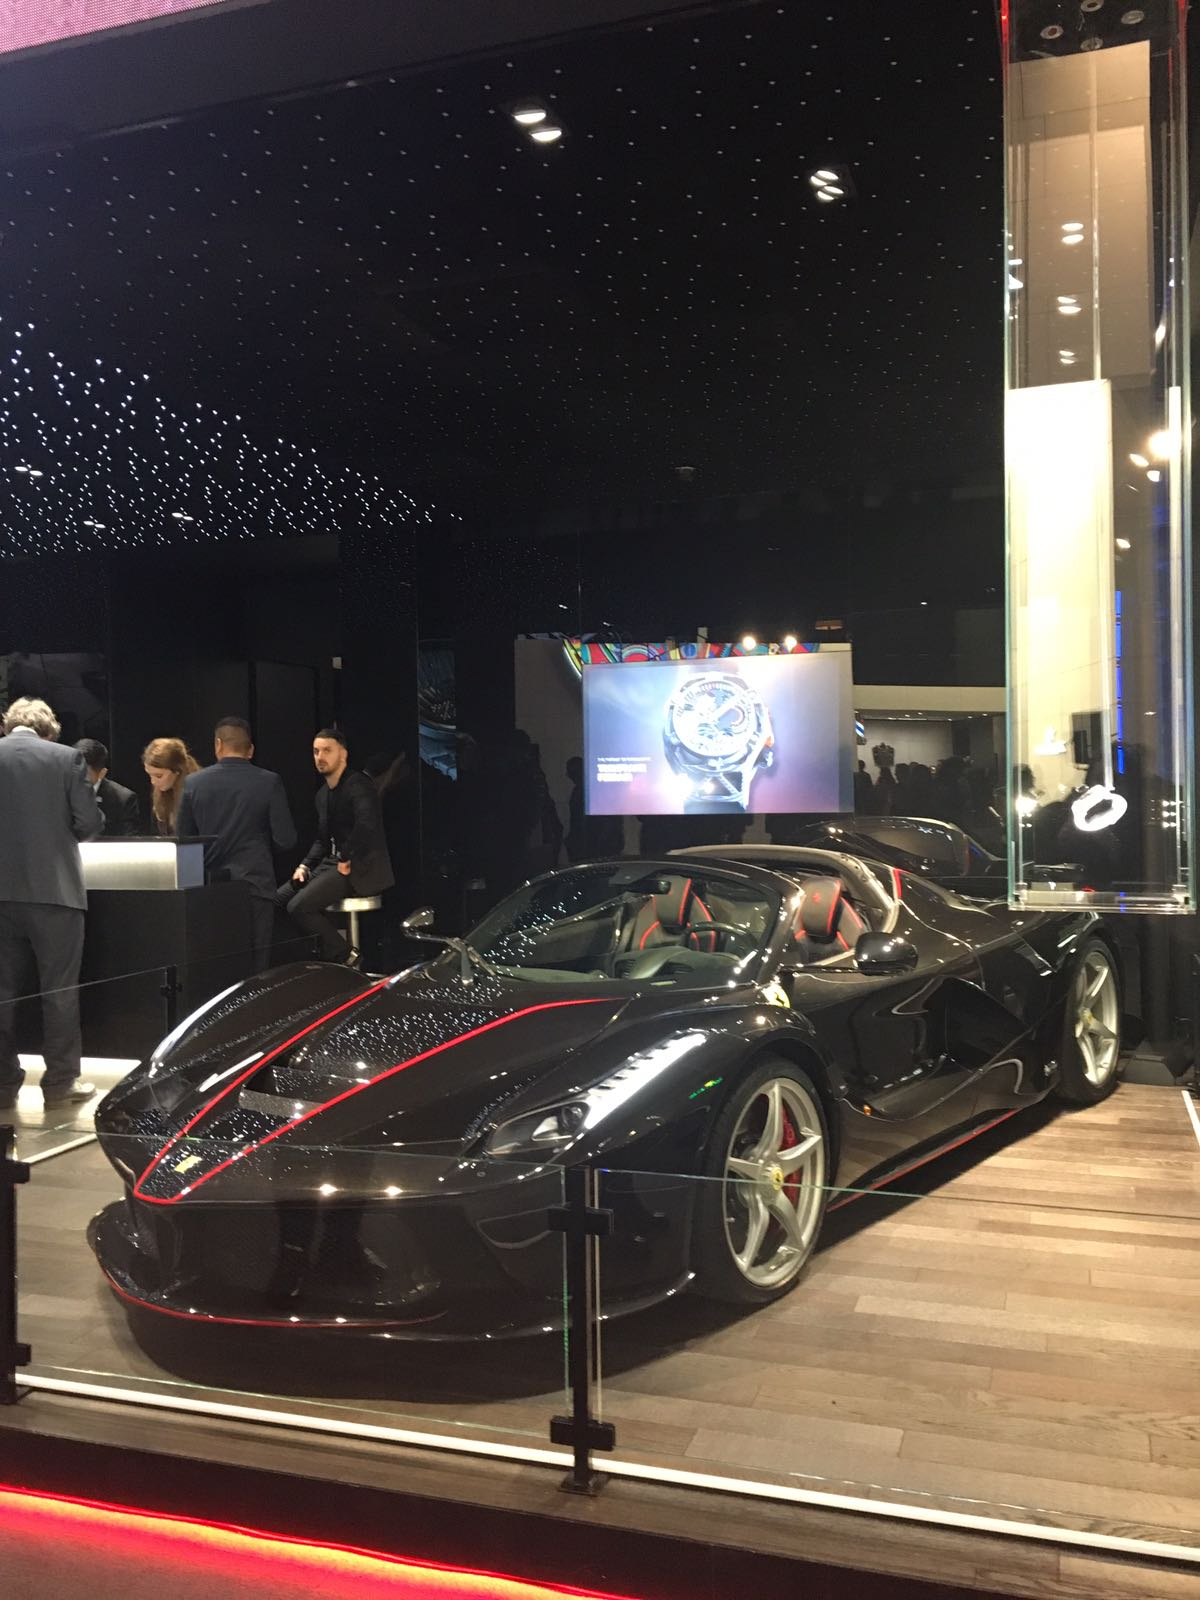 baselworld 2017 Best of Baselworld 2017 in Pictures Best of Baselworld 2017 in Pictures 9